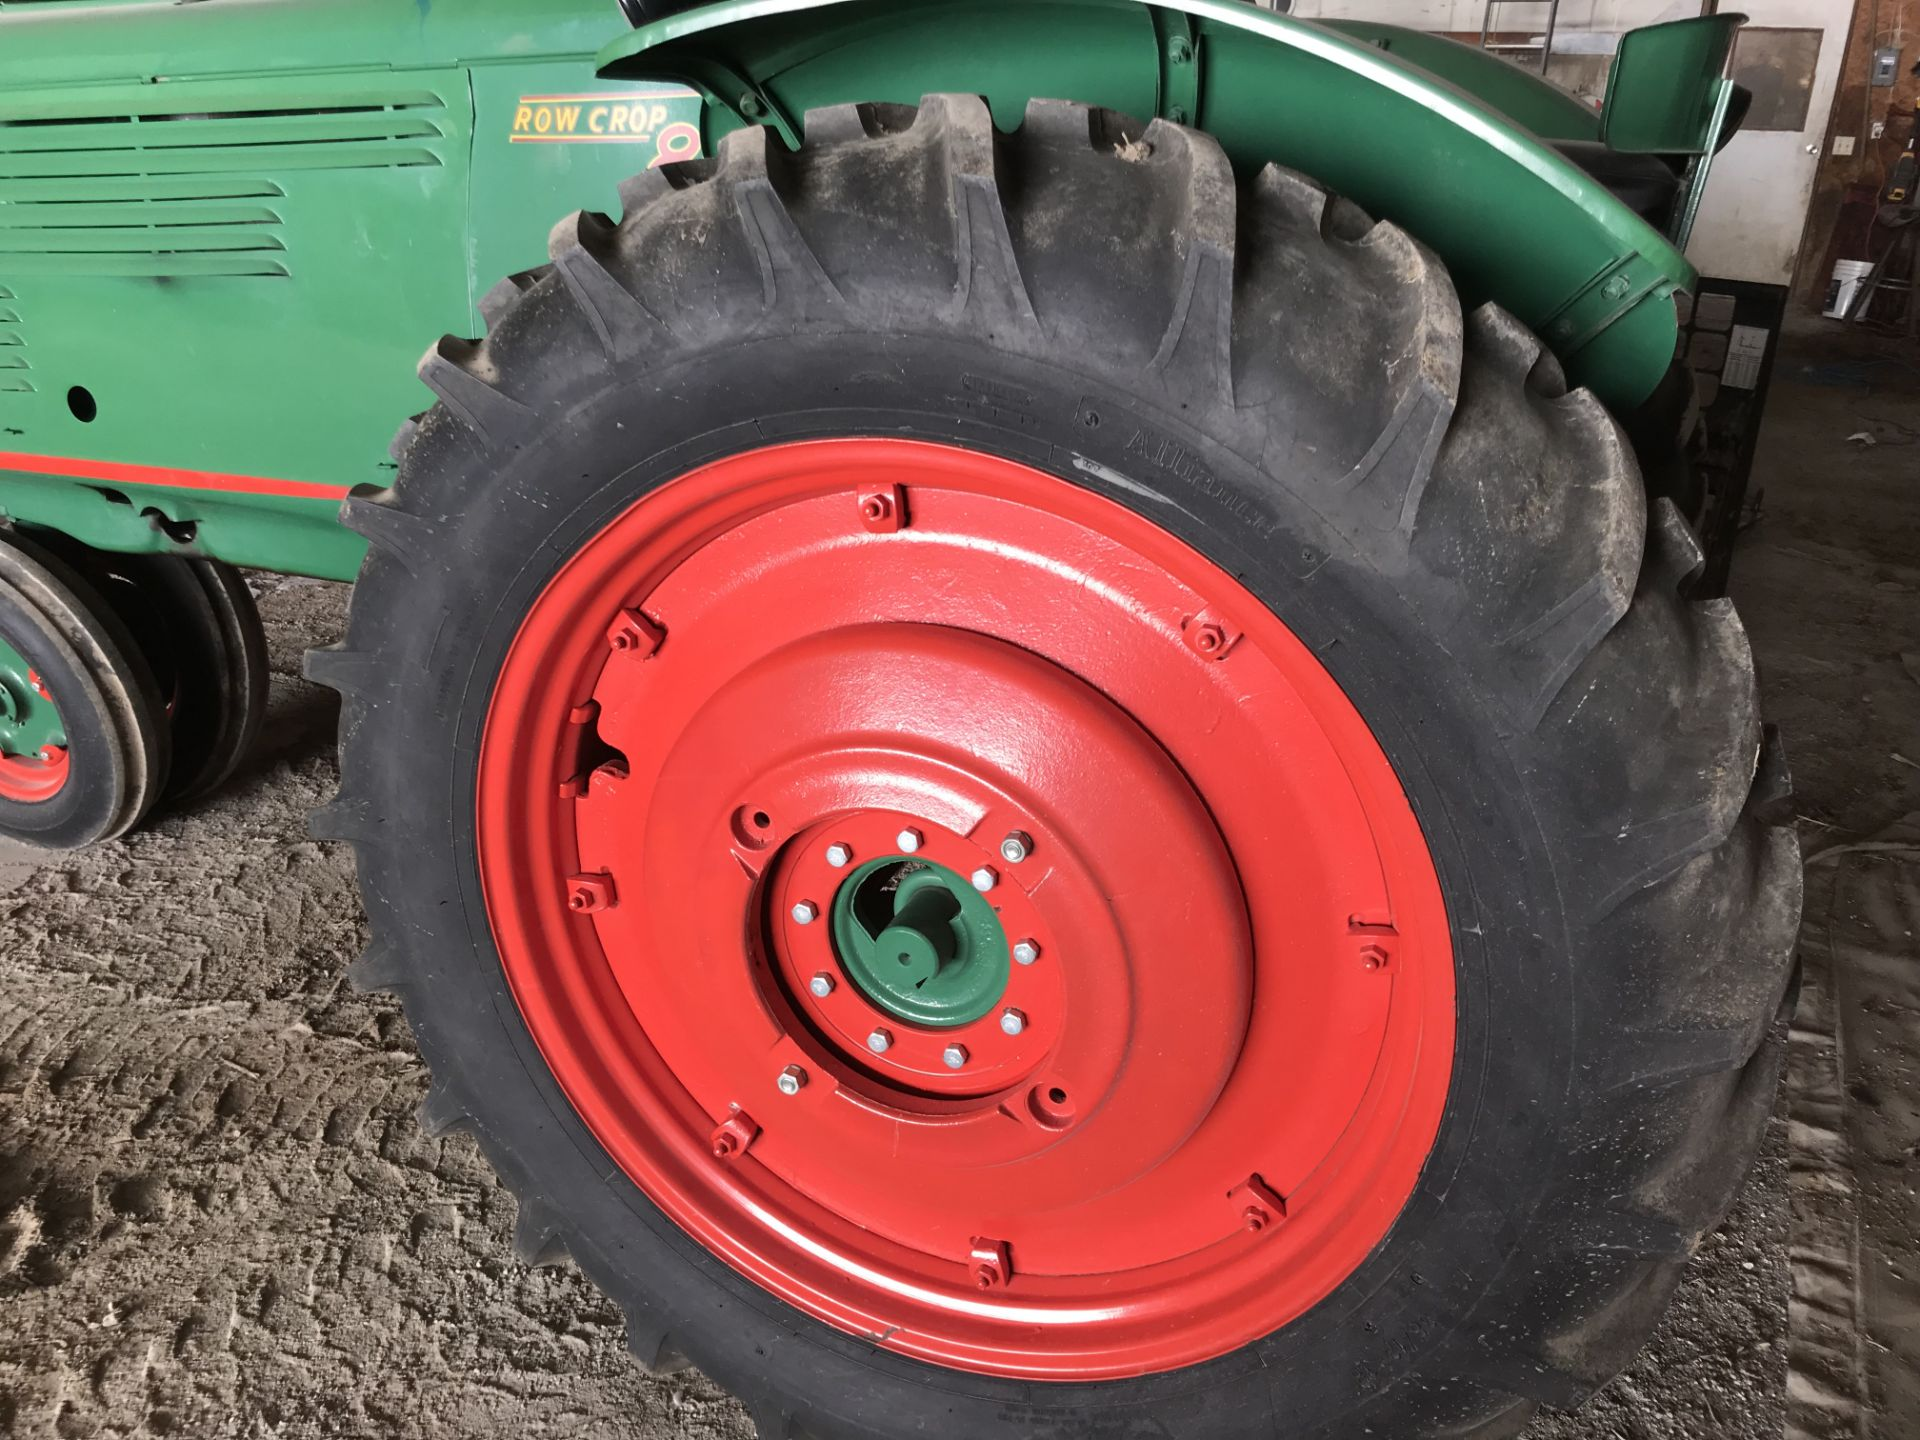 Lot 10 - Mdl.88 S#120916D2 NF, Factory WF, Live PTO, 12x38 New Rubber (restored)